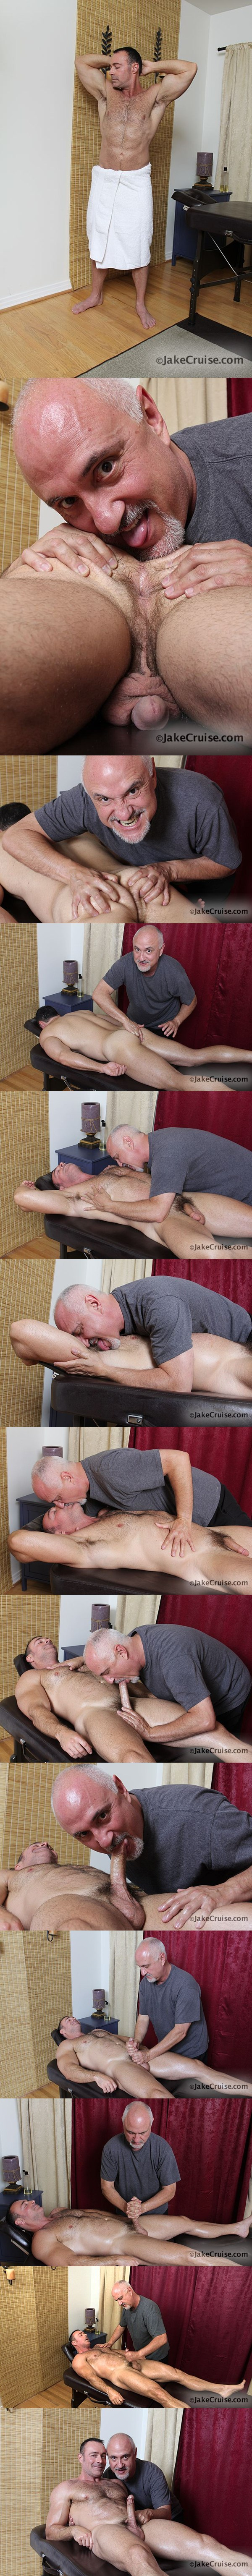 Masculine Brad Kalvo Massaged, rimmed, fingered, jerked off at Jakecruise 02